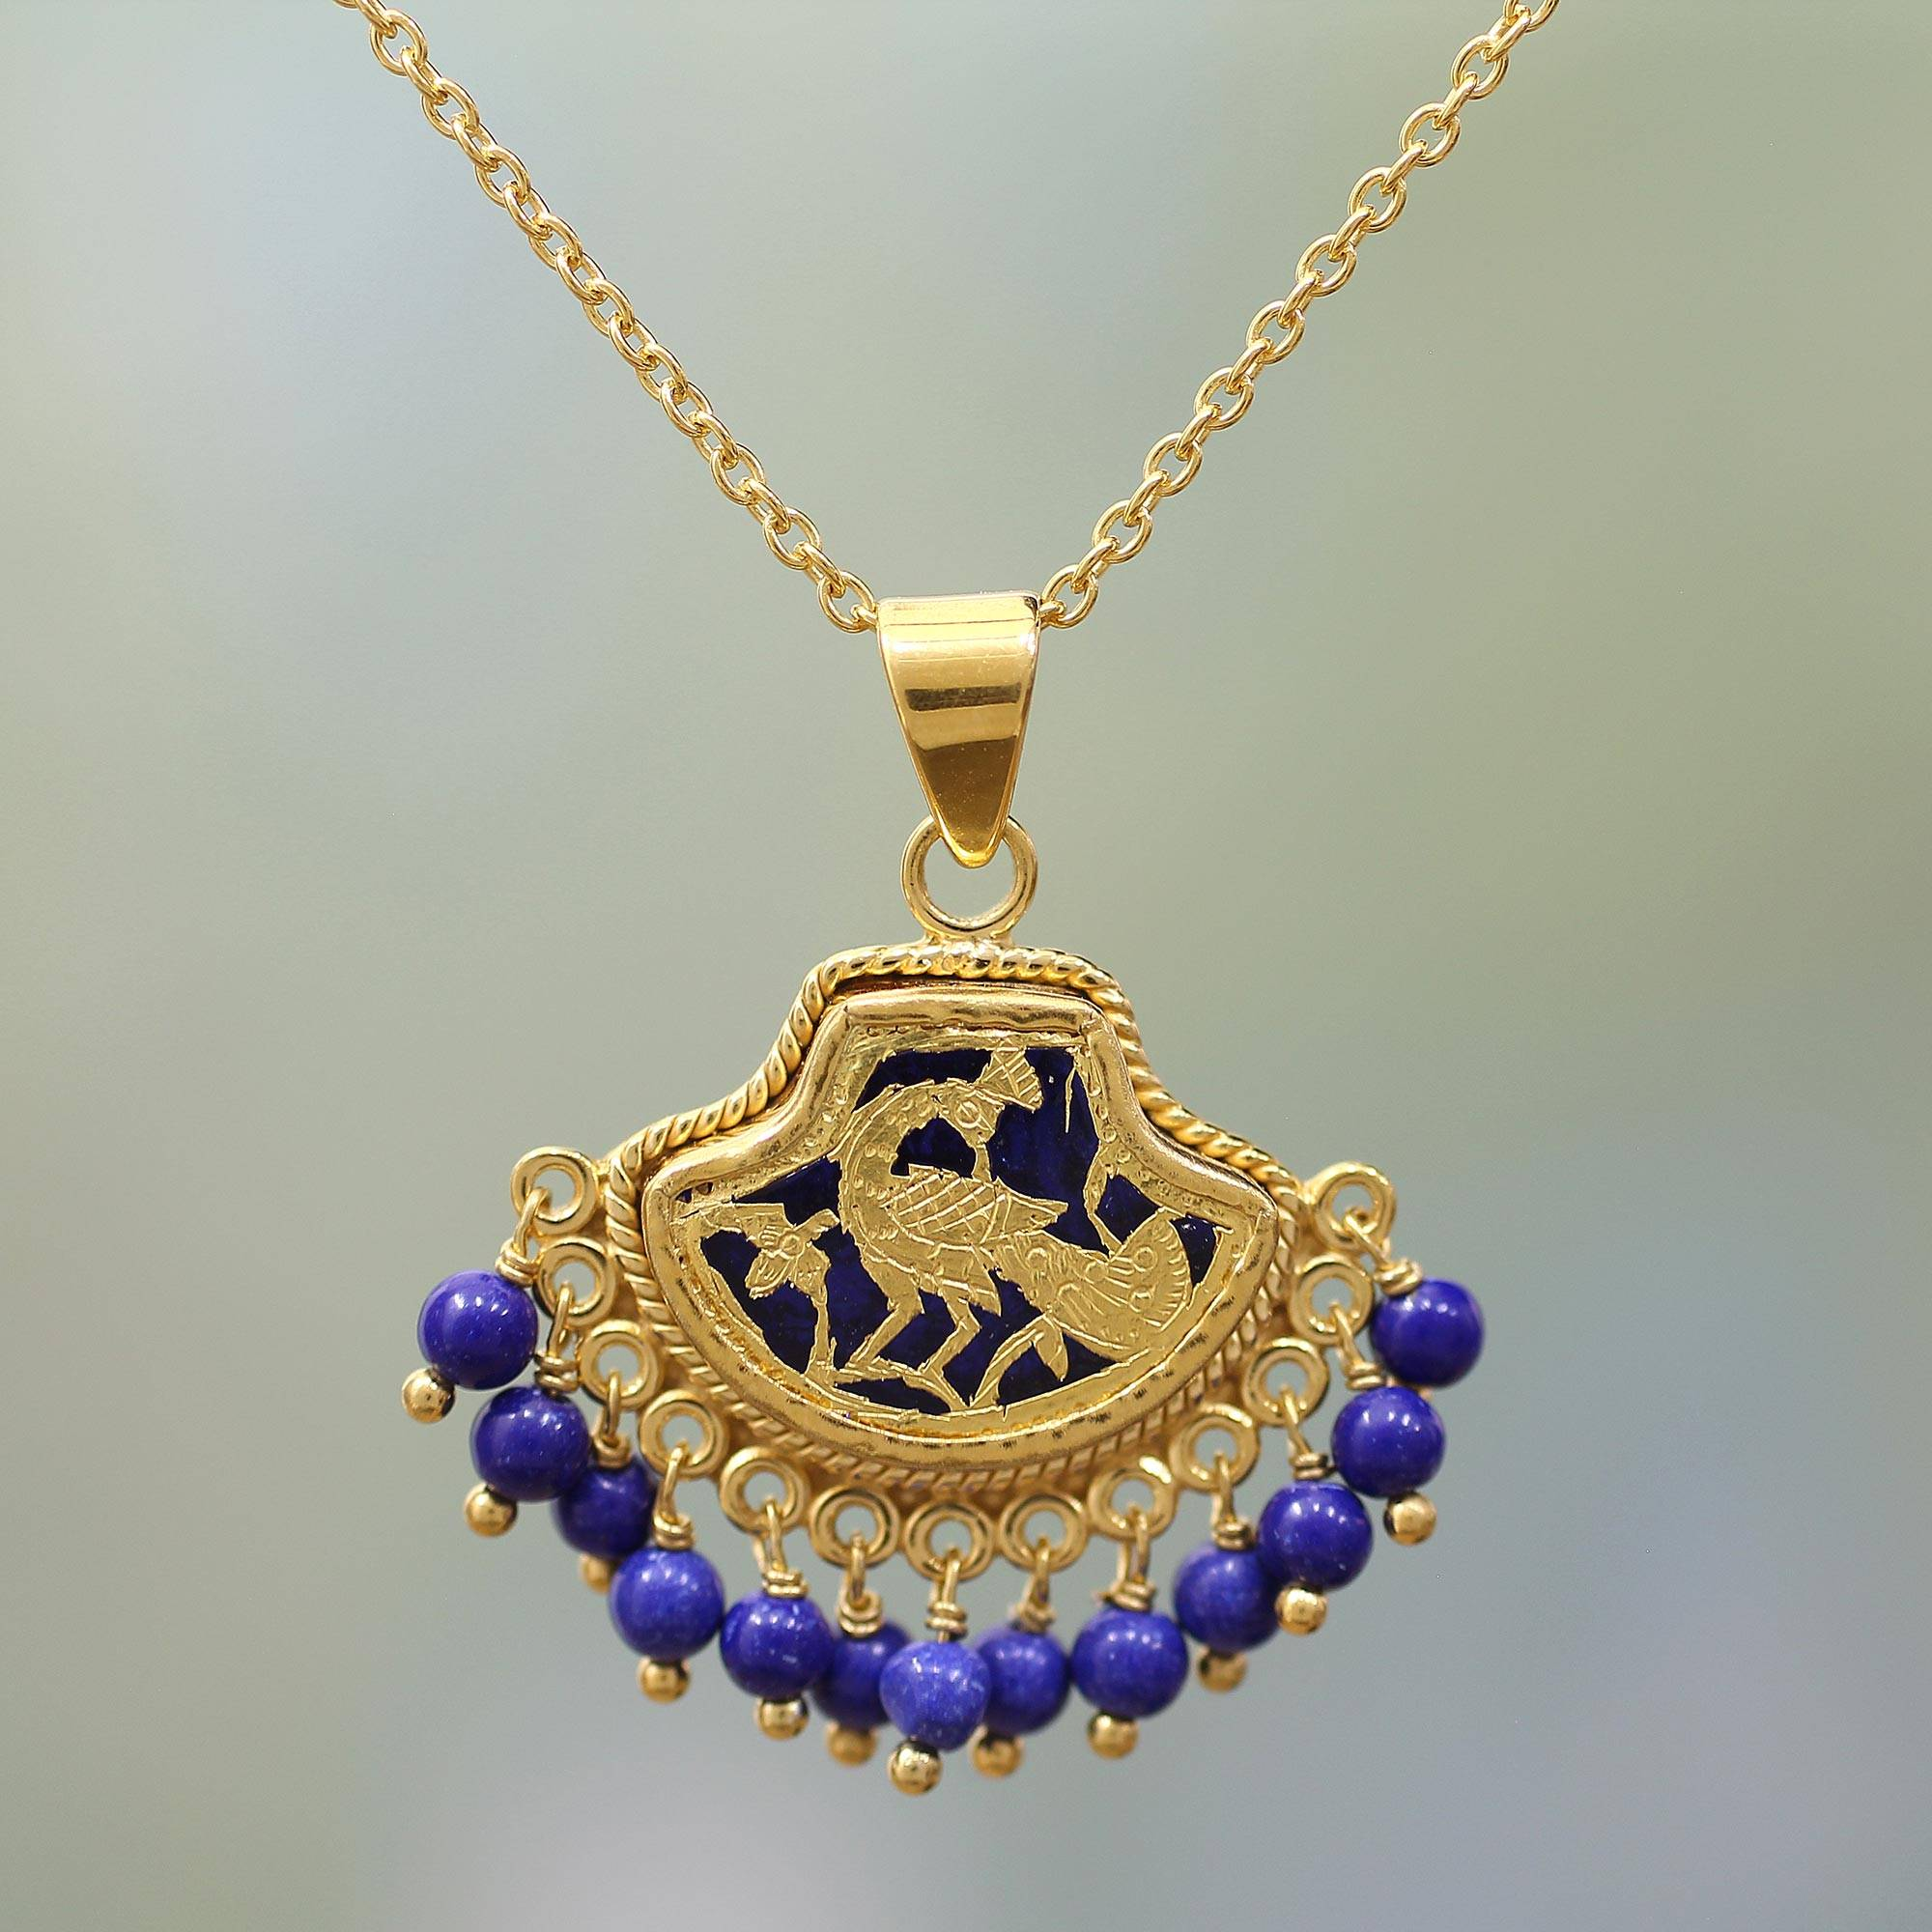 fdf1f8a13dec9 Lapis Lazuli Peacock Pendant Necklace in 23k Gold, 'Radiant Peacock'